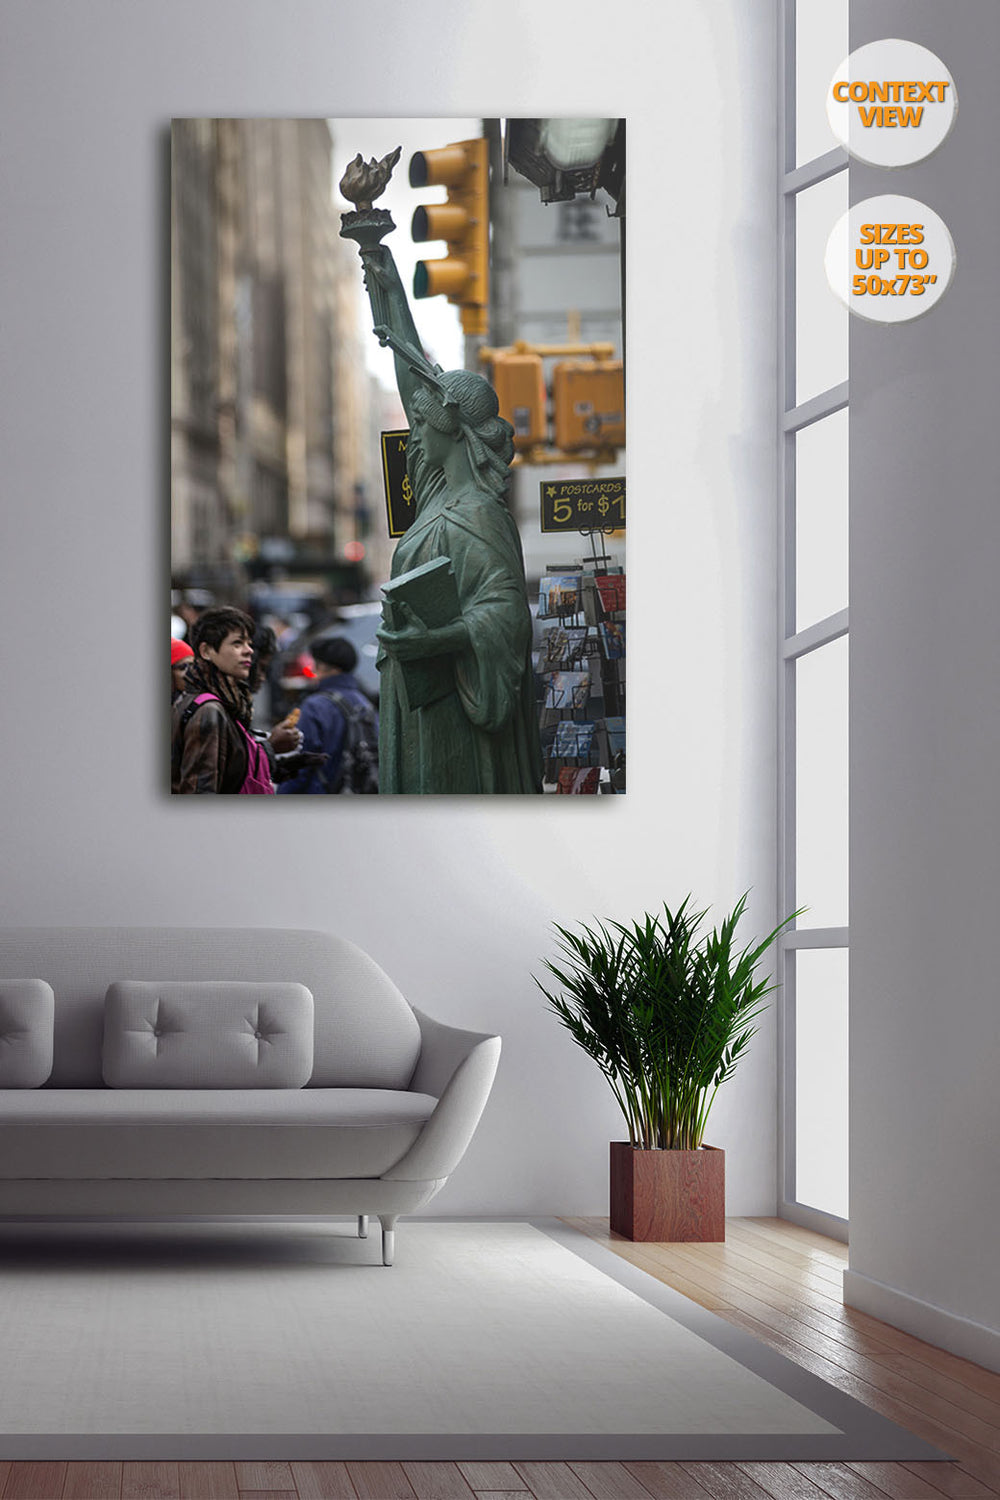 The Statue of Liberty in the 5th Avenue, New York, United States. | Print hanged next to window.